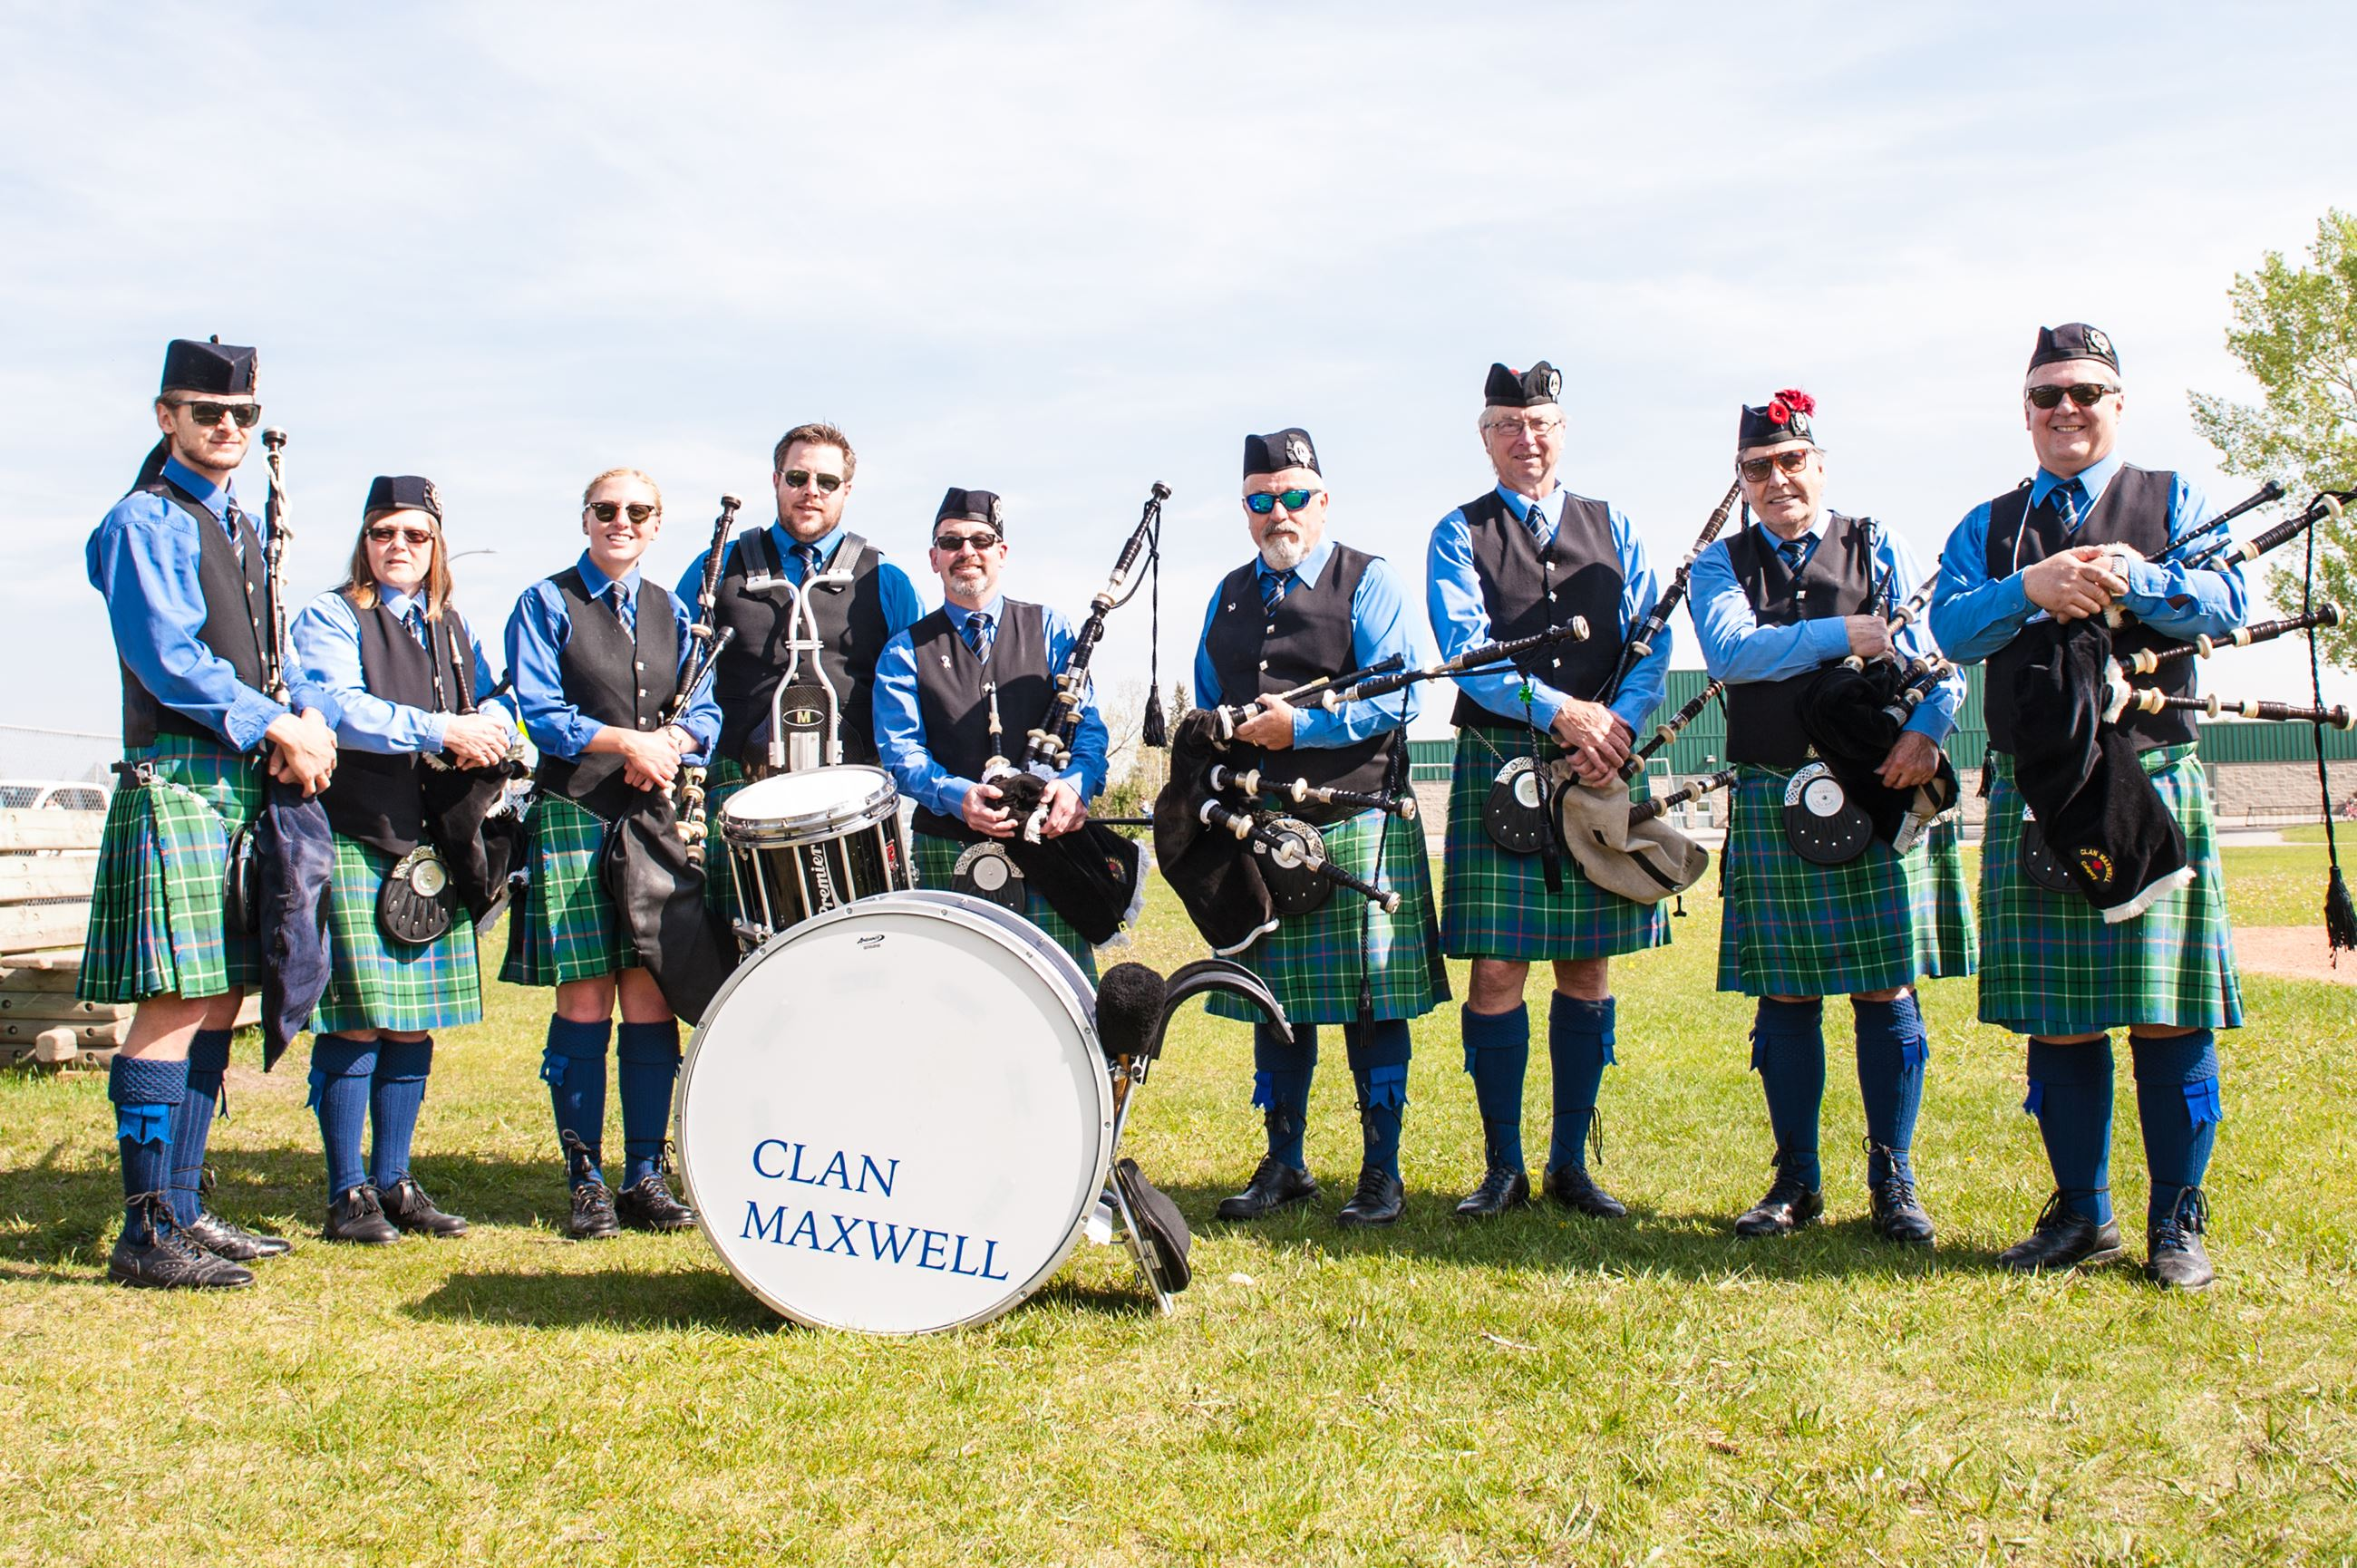 Clan Maxwell 6